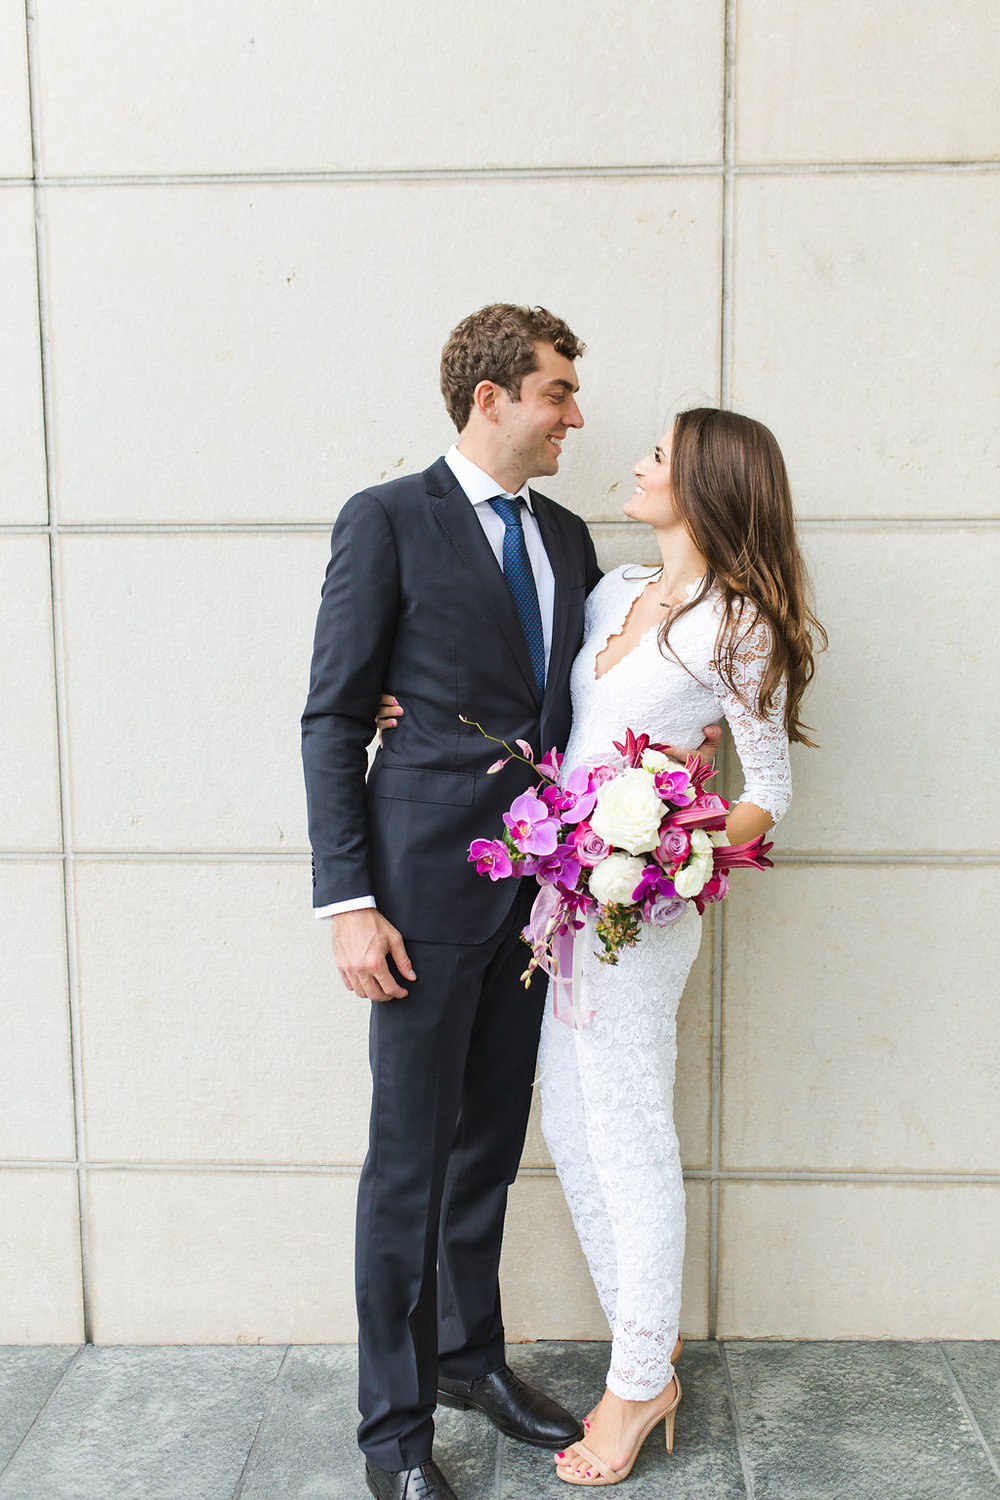 Seattle Courthouse Wedding | Seattle Municipal Court | Downtown Seattle Wedding | Intimate Elopement Wedding | Beautiful Simple Courthouse Wedding | Bride and Groom Portrait | White Wedding Jumpsuit Outfit